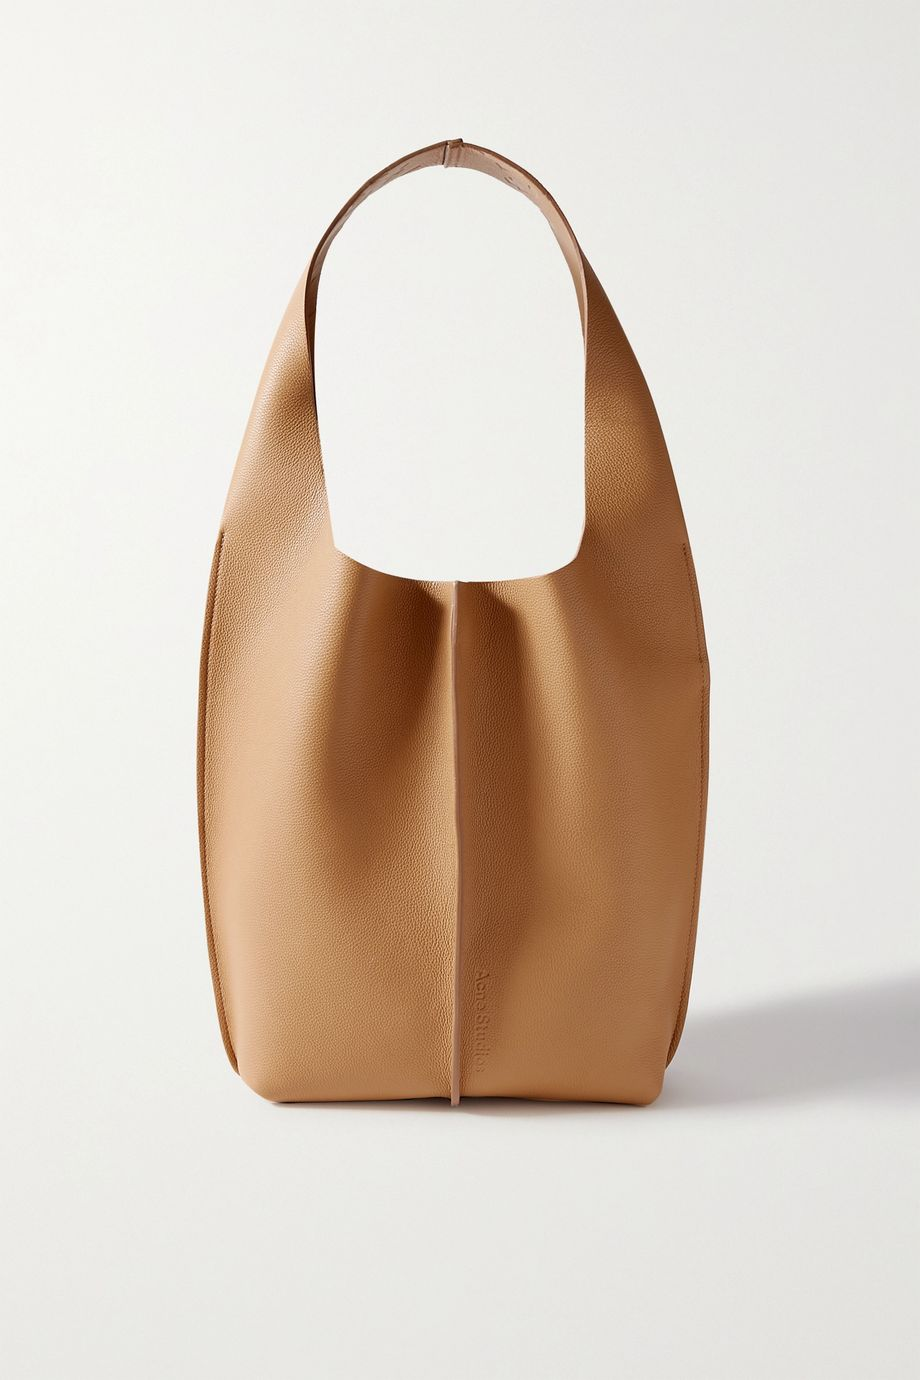 Acne Studios Textured-leather tote